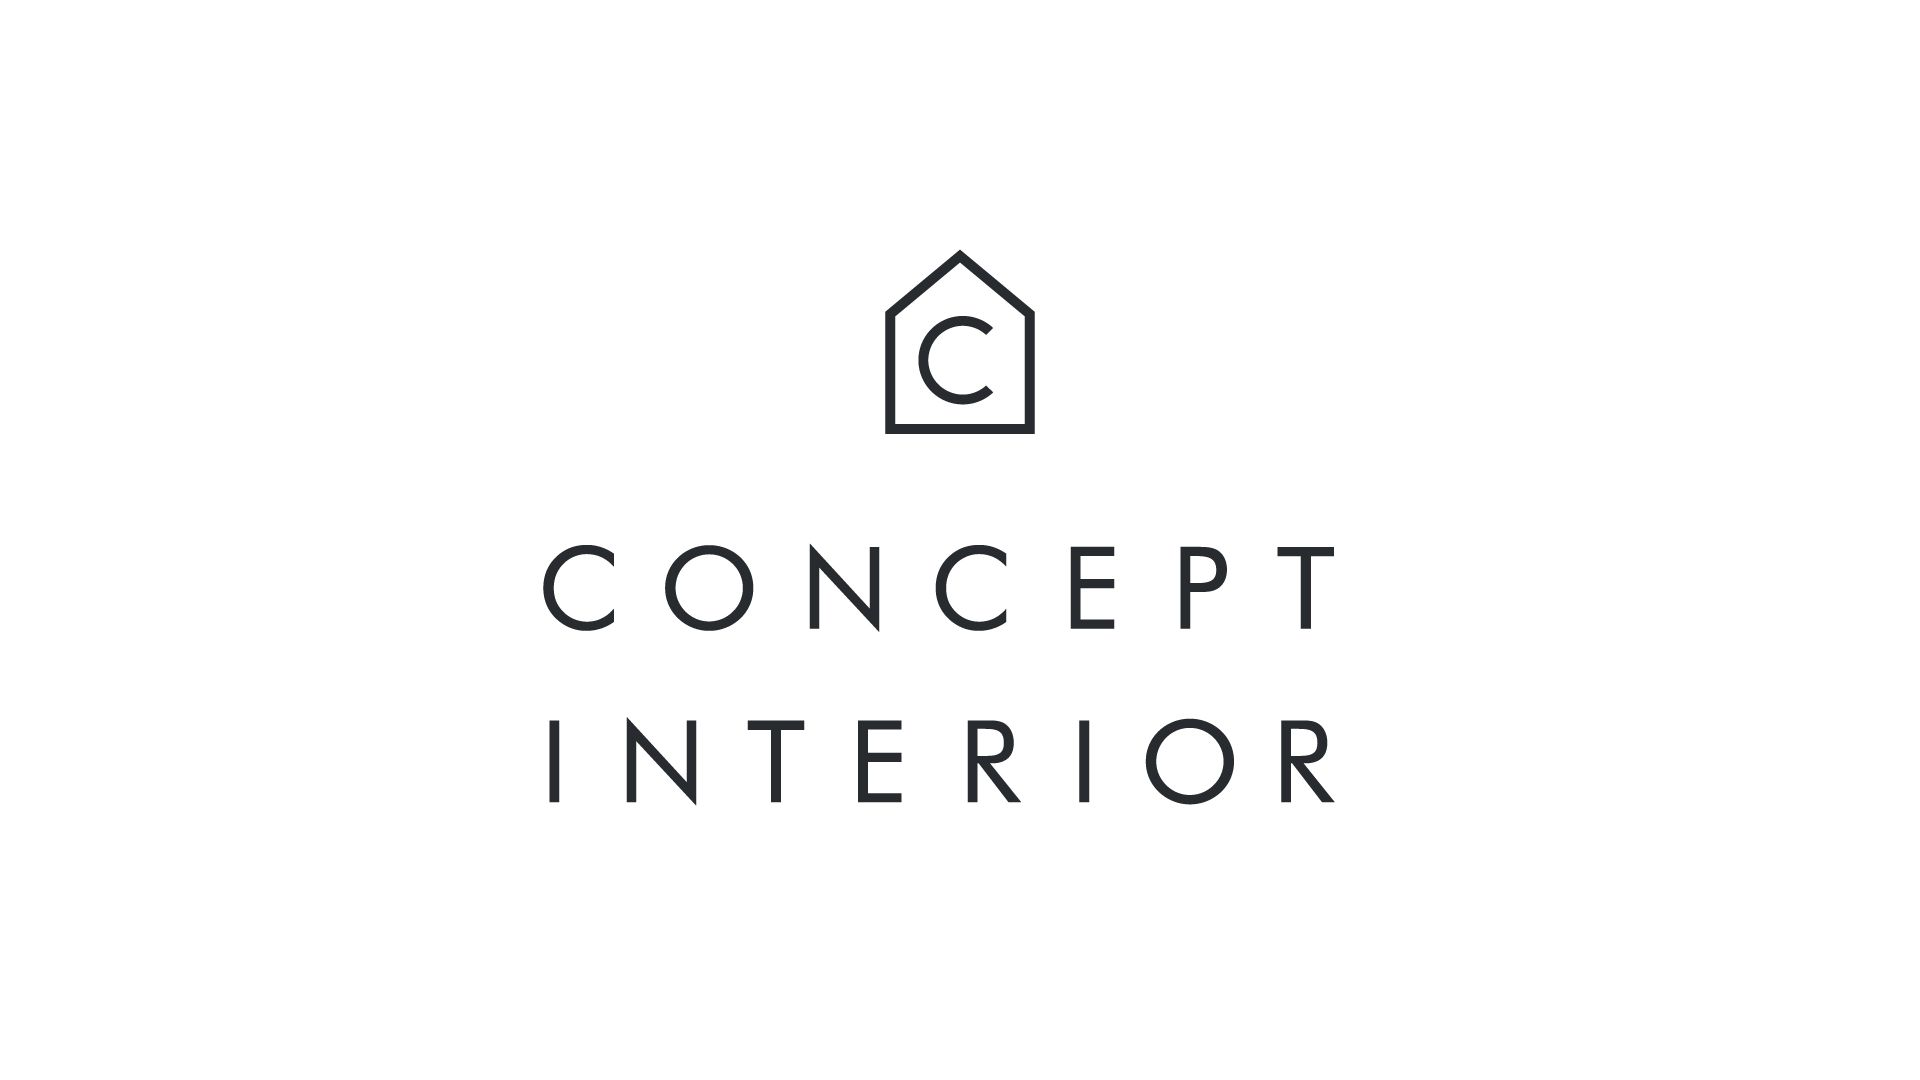 interior design logos ideas images